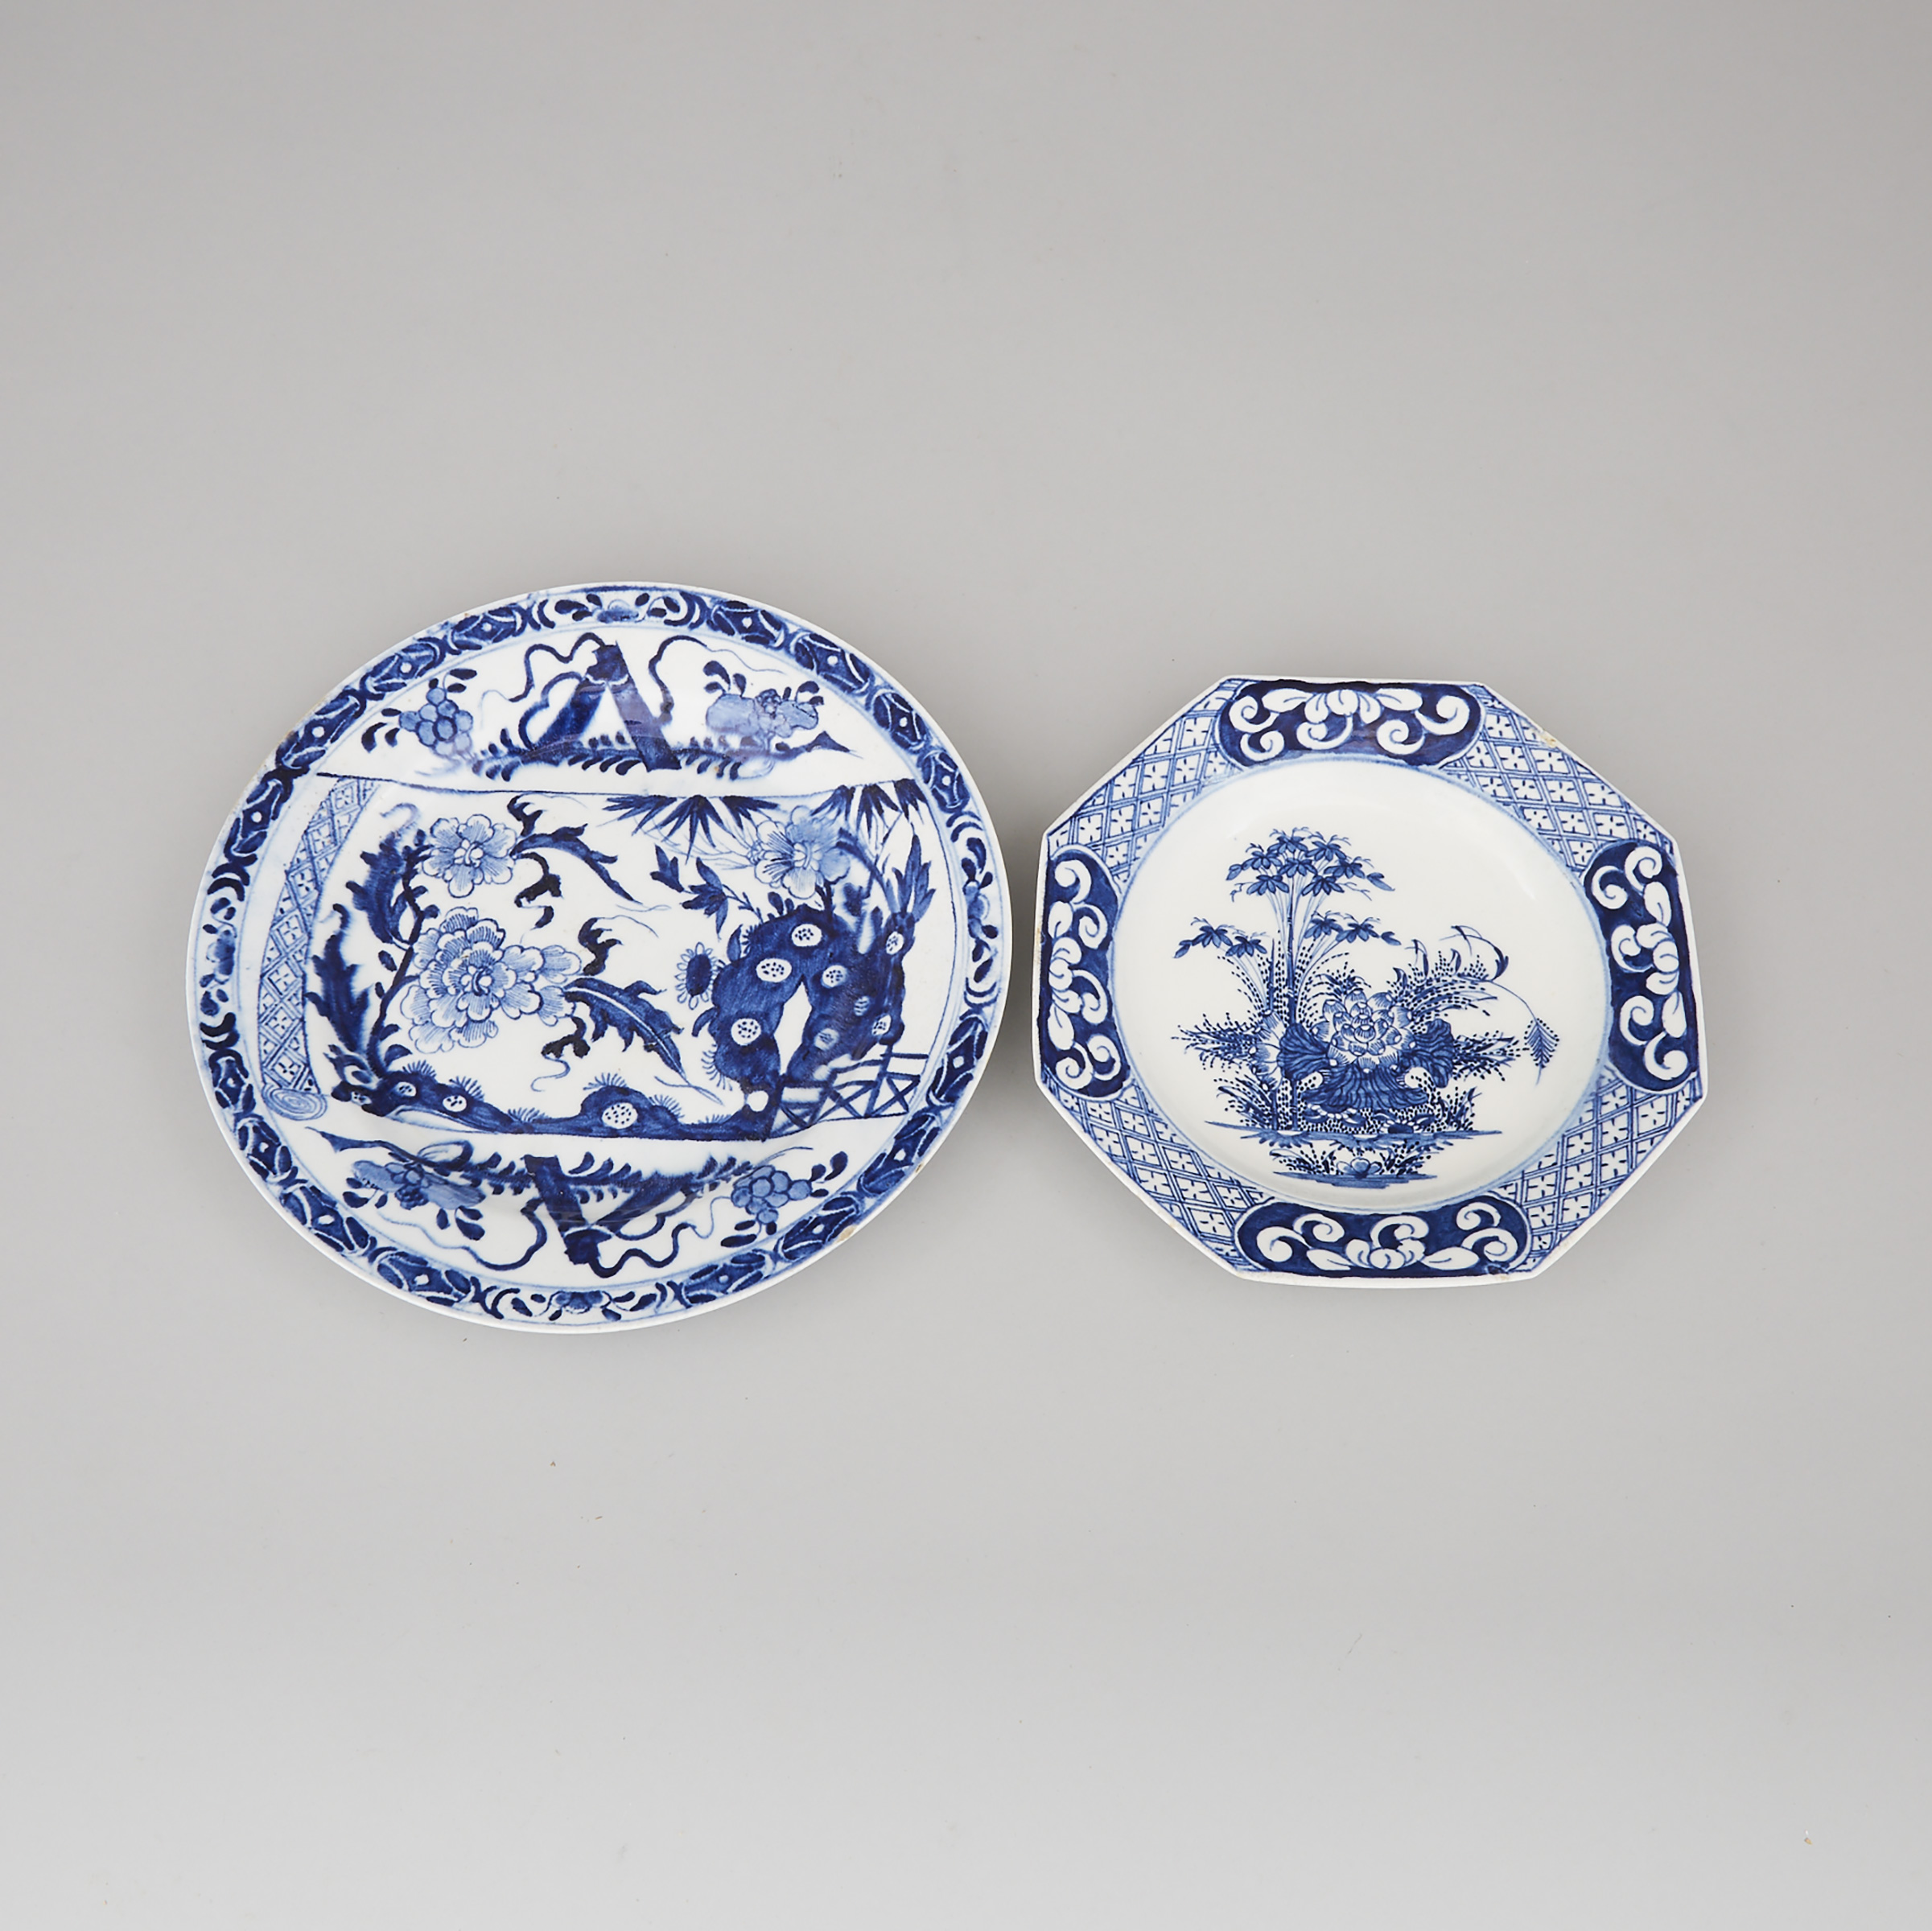 Bow Blue and White Octagonal Dish and a Larger Plate, c.1760